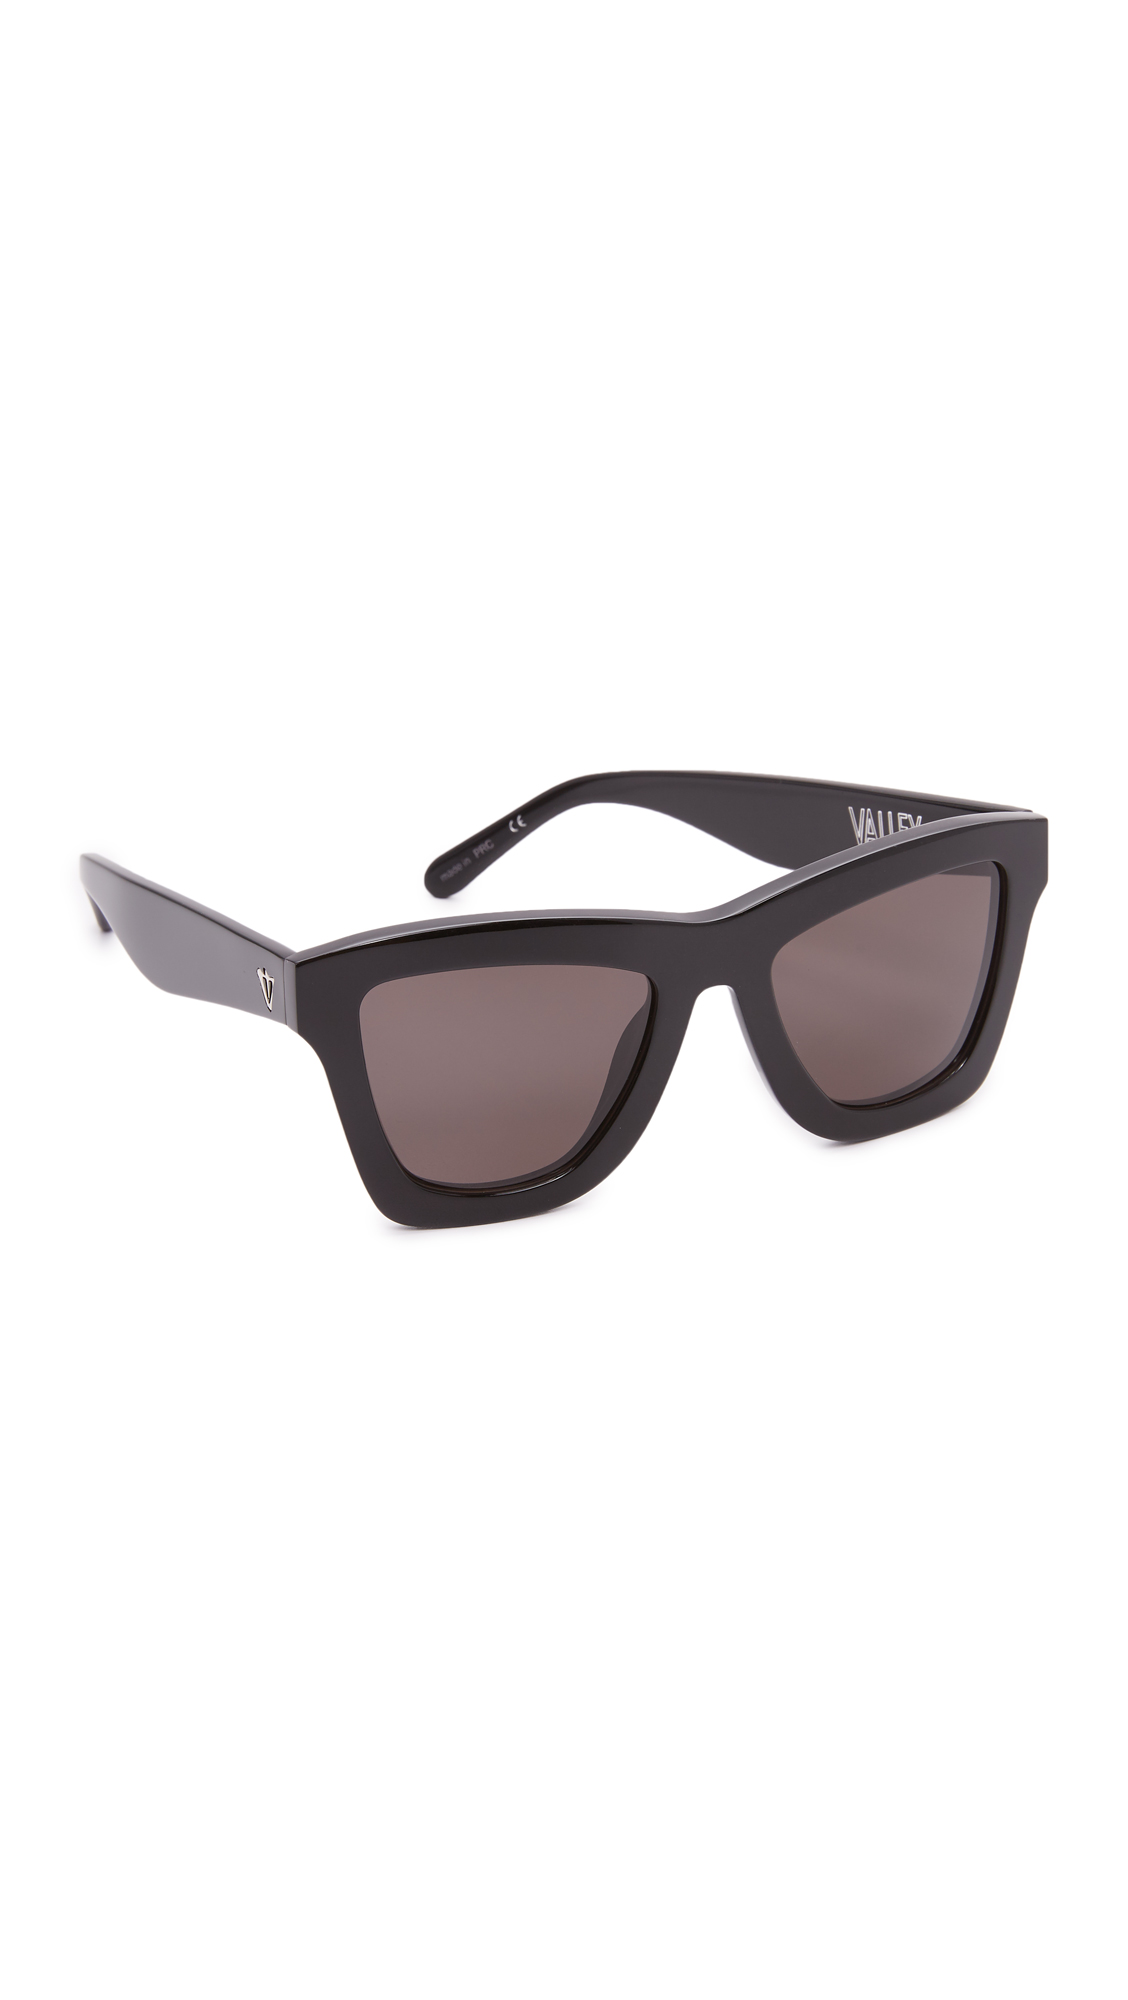 Thick, glossy frames give these Valley Eyewear sunglasses a strong, substantial look. Hard case and pouch included. Square frame. Non polarized lenses. Imported, China. Measurements Width: 5.5in / 14cm Height: 2.25in / 5.5cm Lens Width: 50mm. Available sizes: